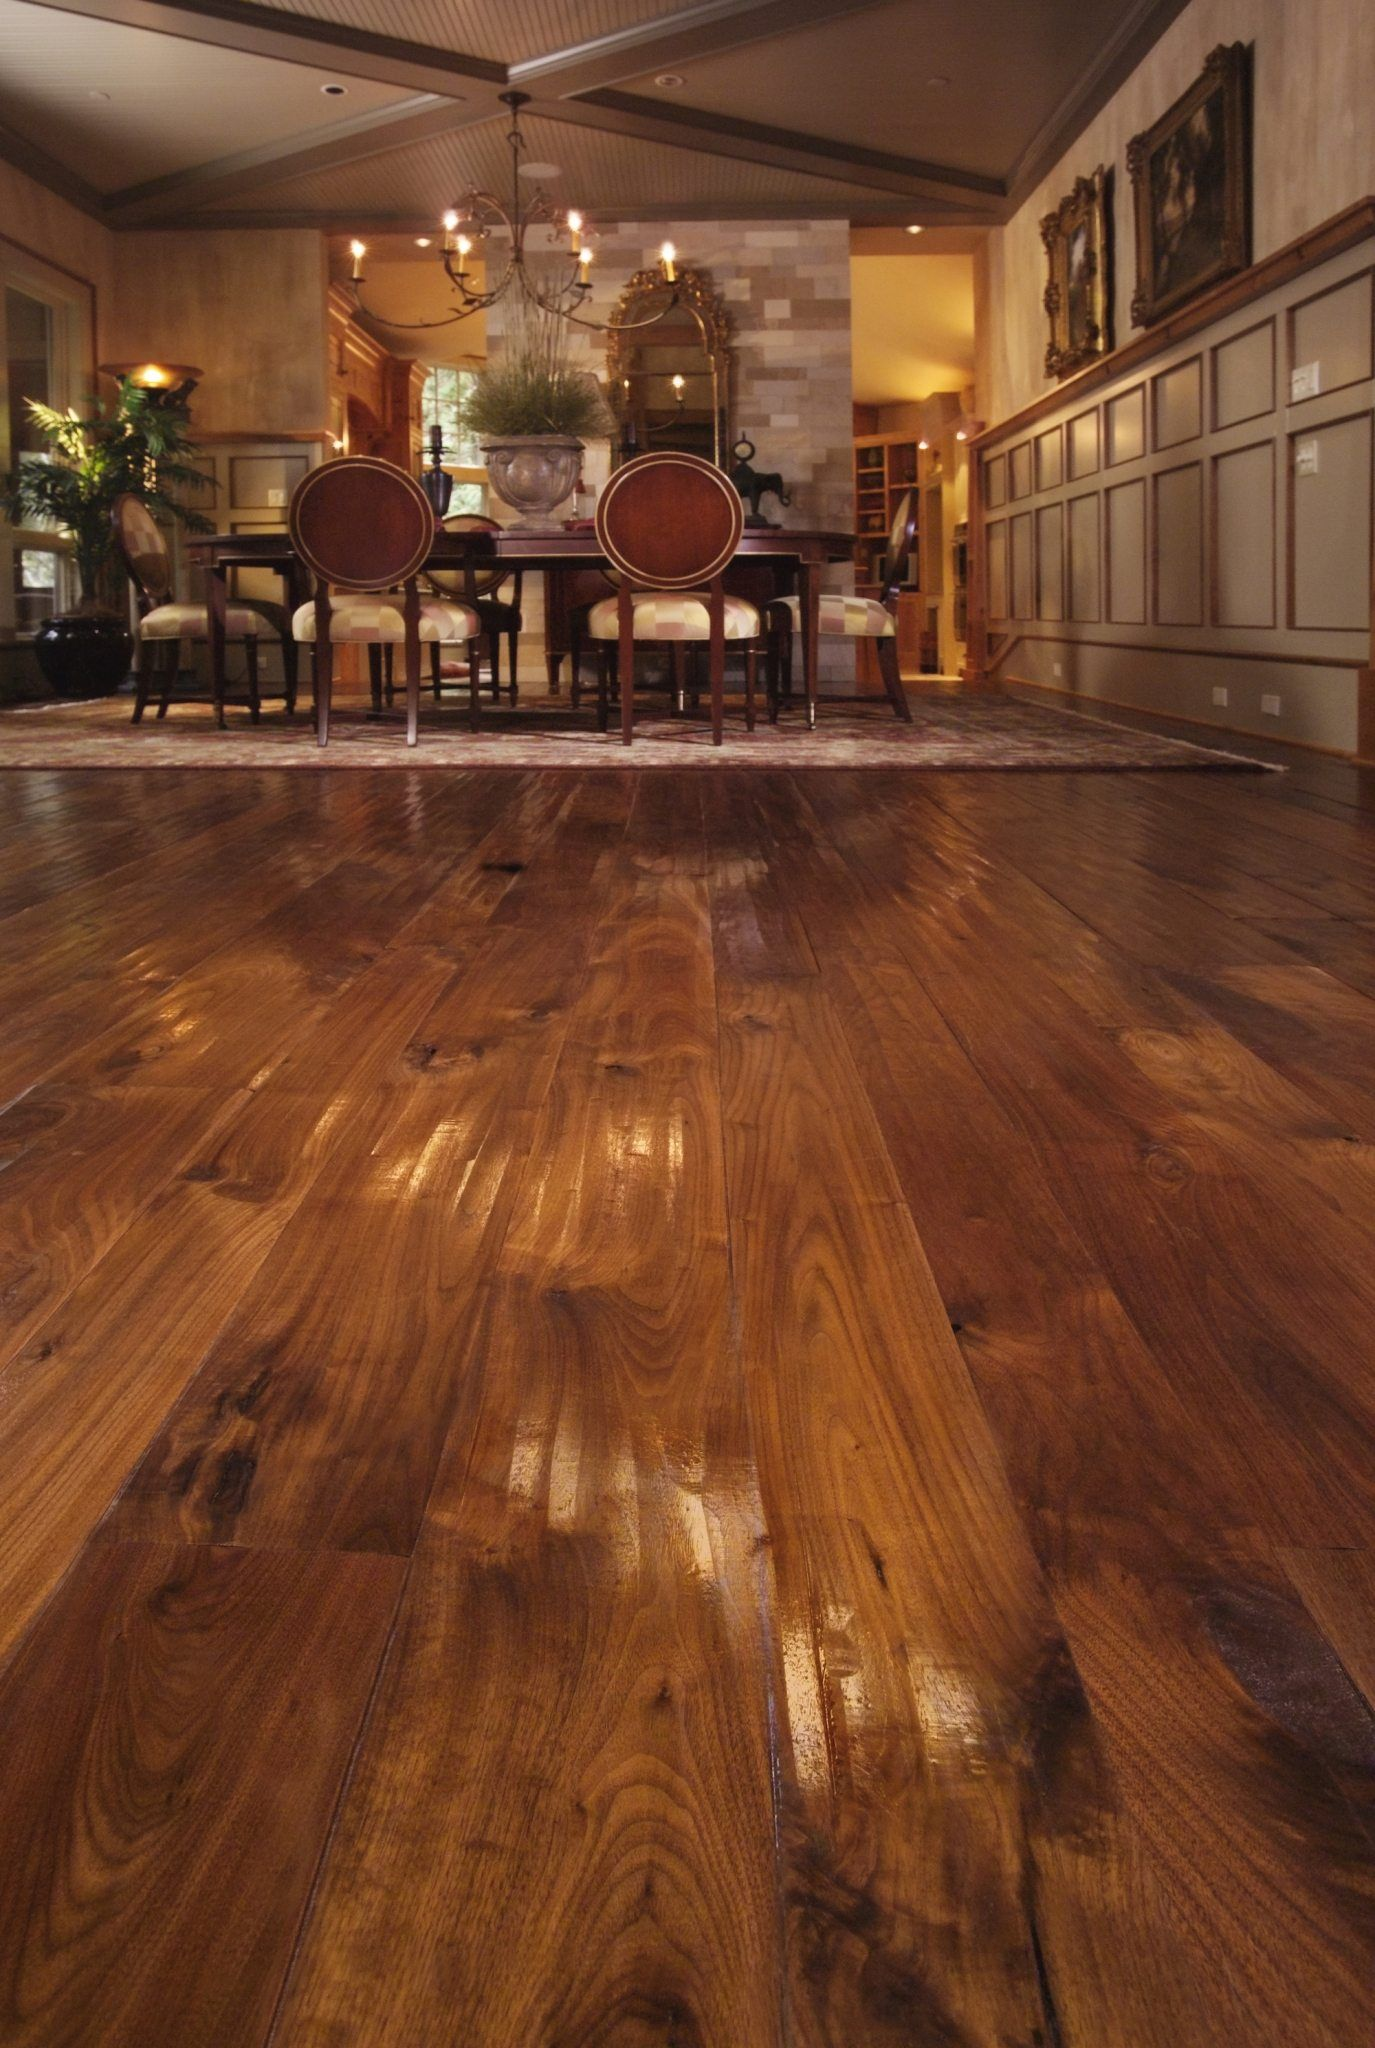 Carlisle Wide Plank Floors Walnut Flooring in a Dining Room The